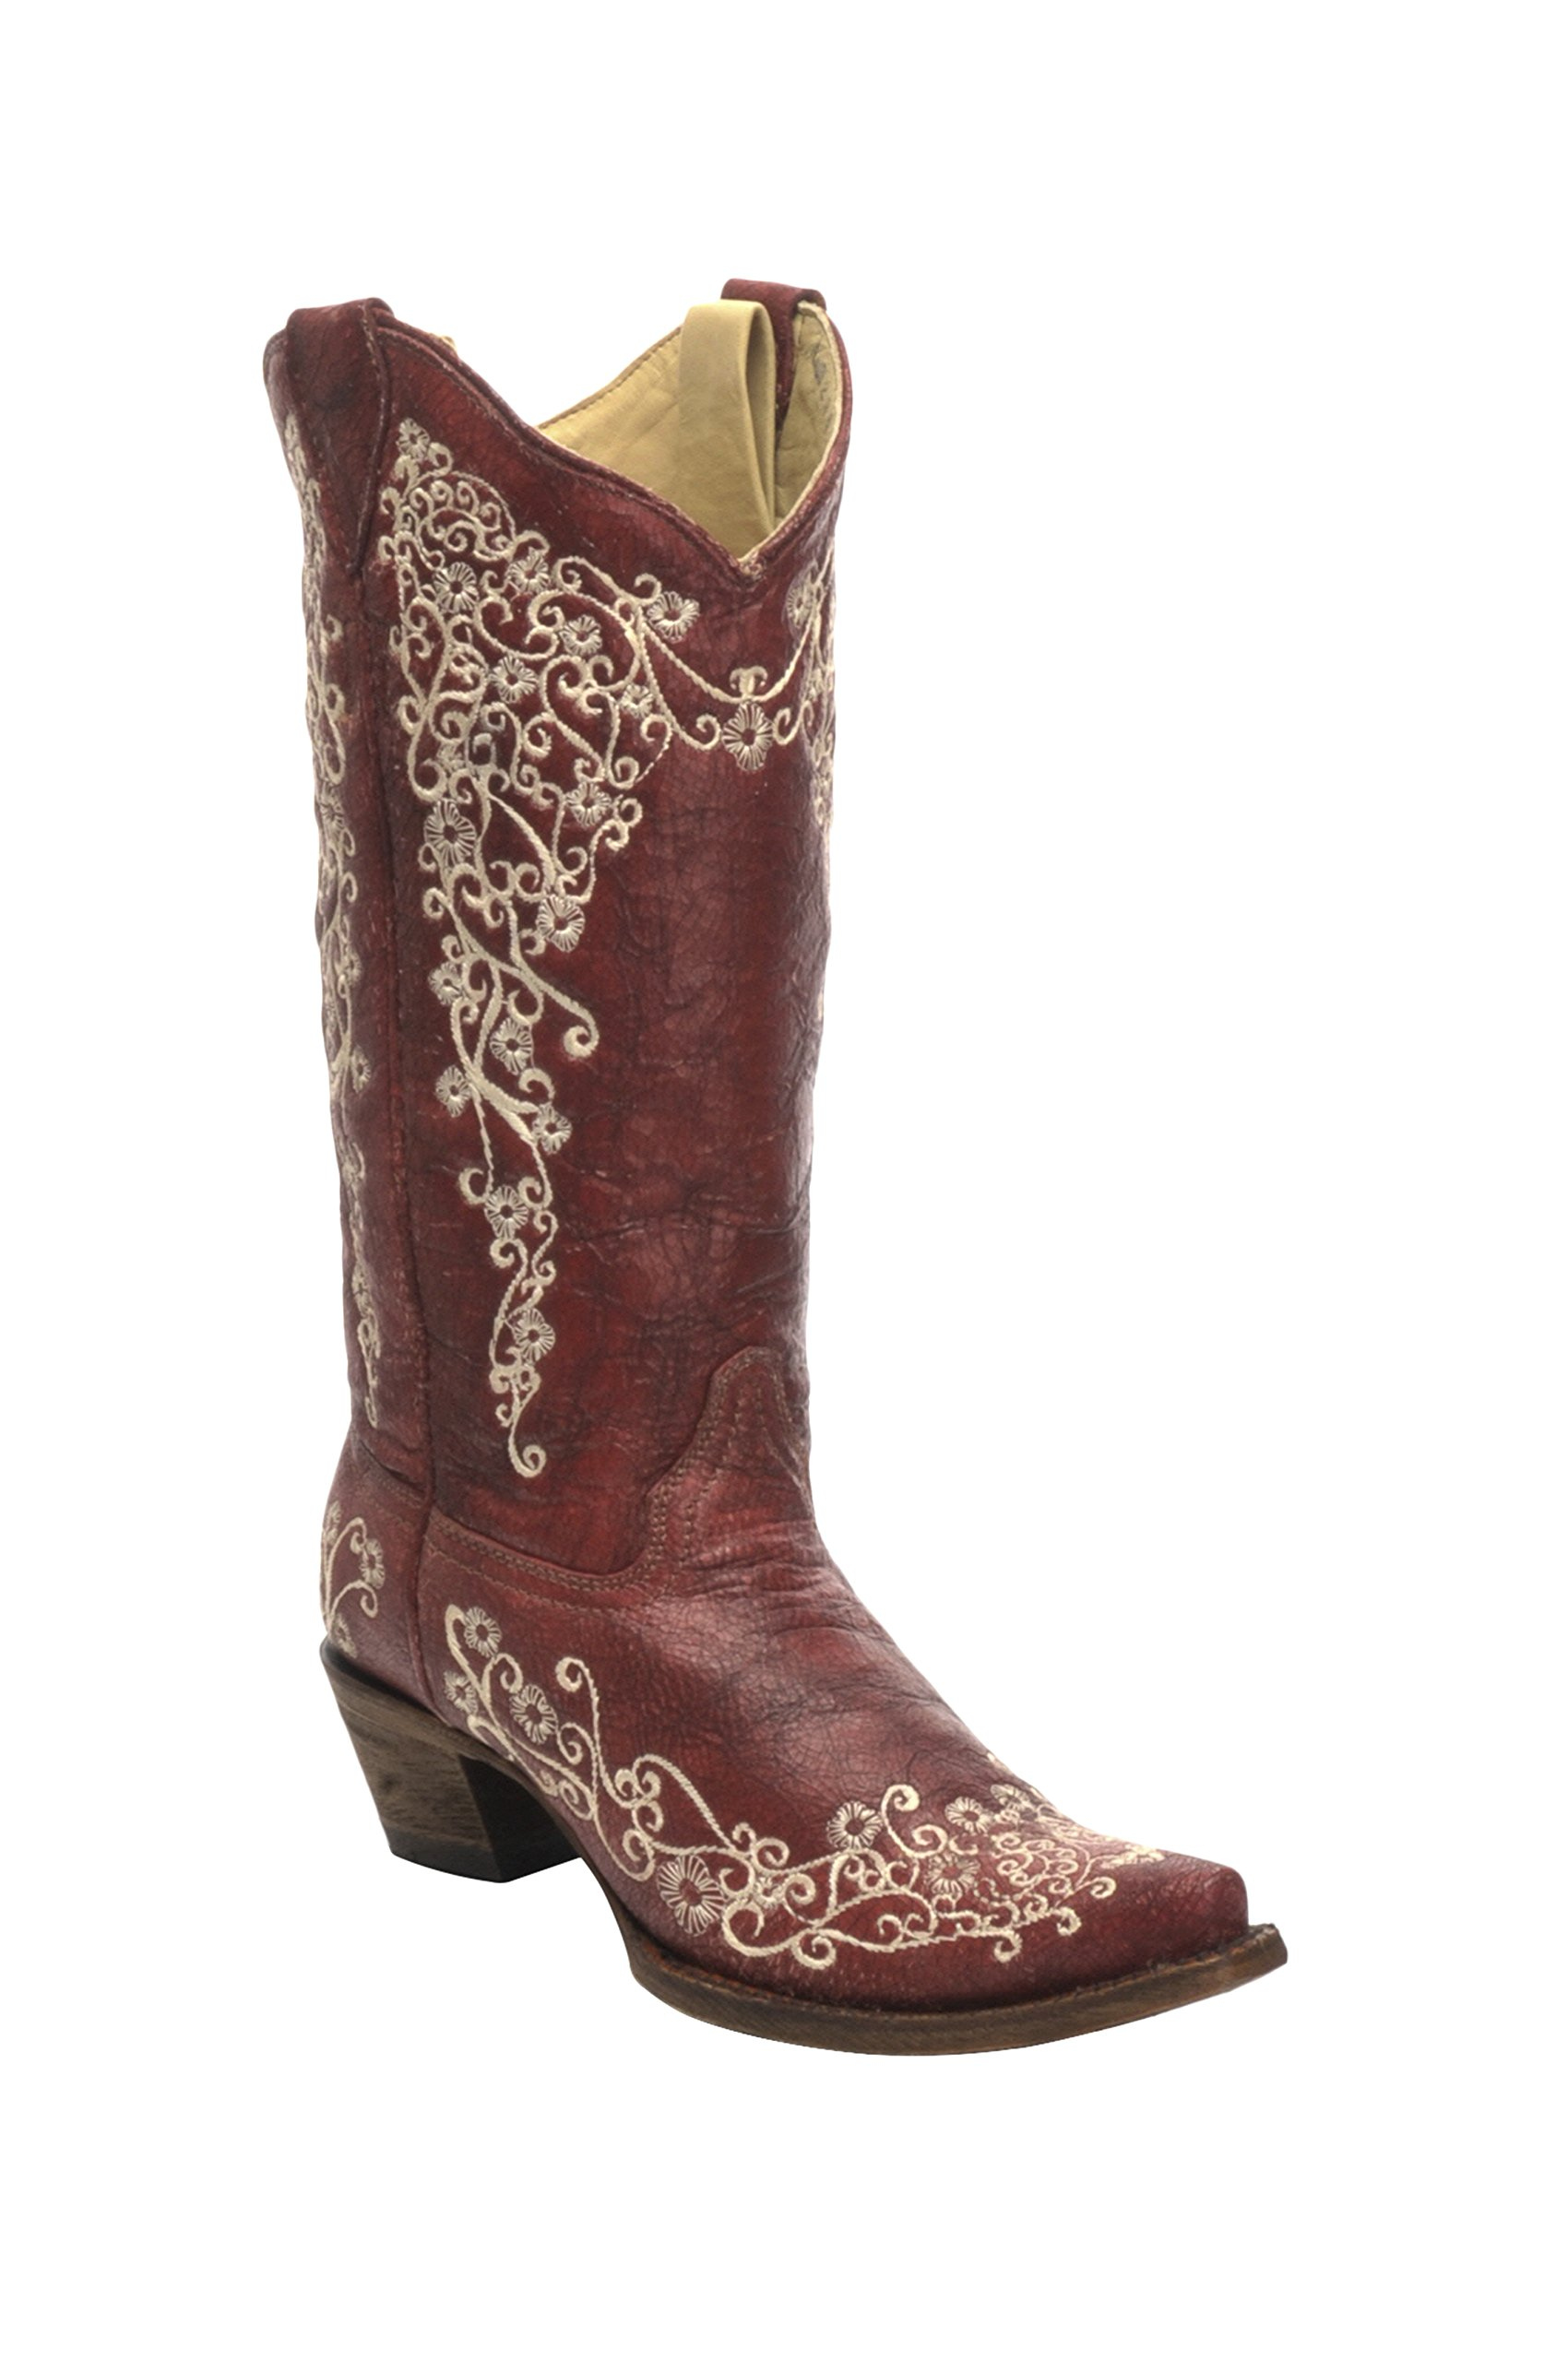 ac67fe33fb0 Corral Women's 11-inch Red/Beige Embroidery Snip Toe Pull-On ...